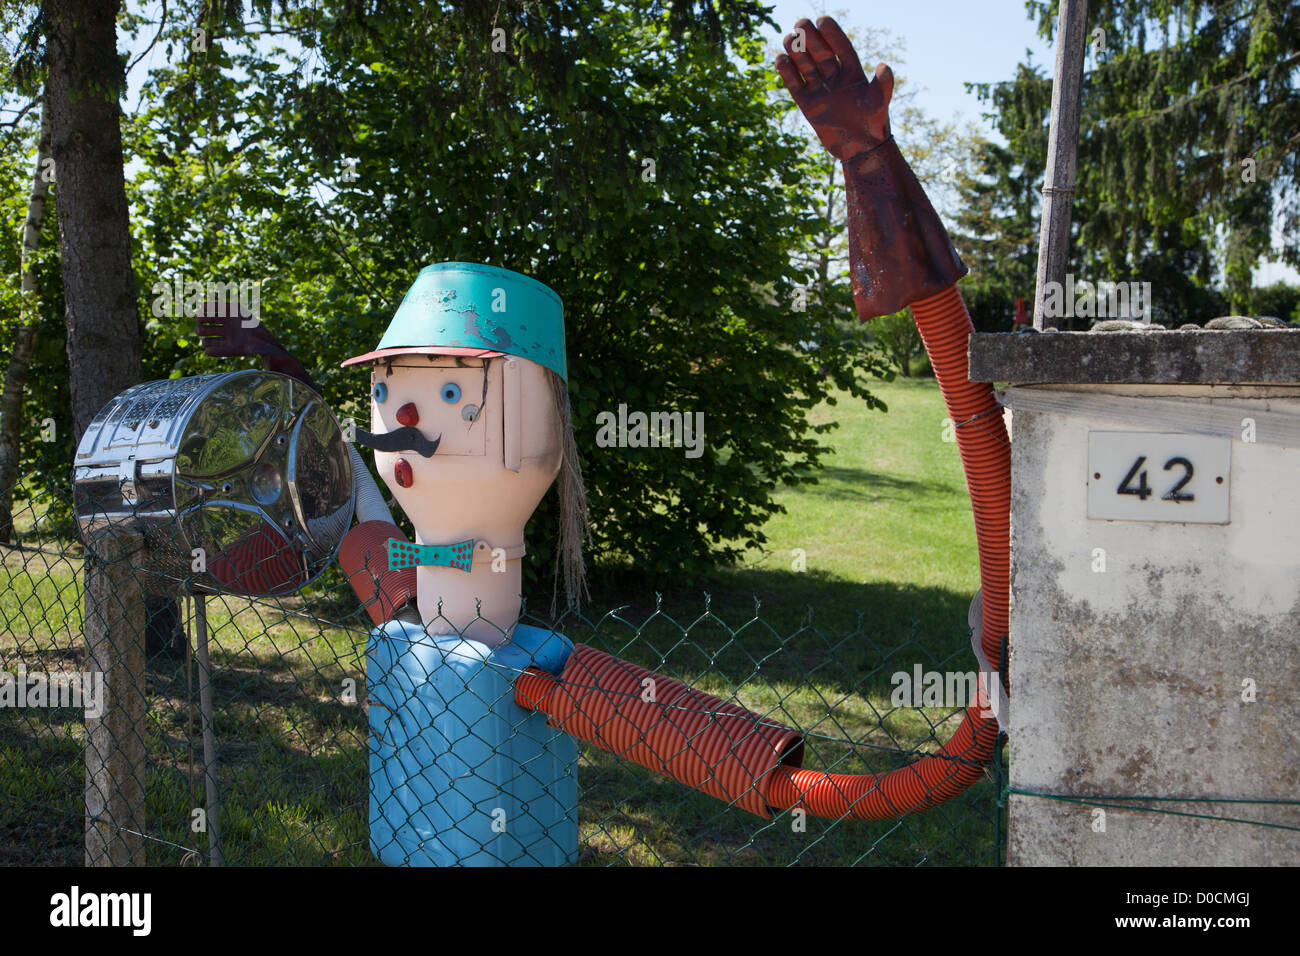 OUT OF THE ORDINARY MAILBOXES IN SAINT-MARTIN-D'ABBAT MAILBOX VILLAGE LOIRET (45) FRANCE - Stock Image